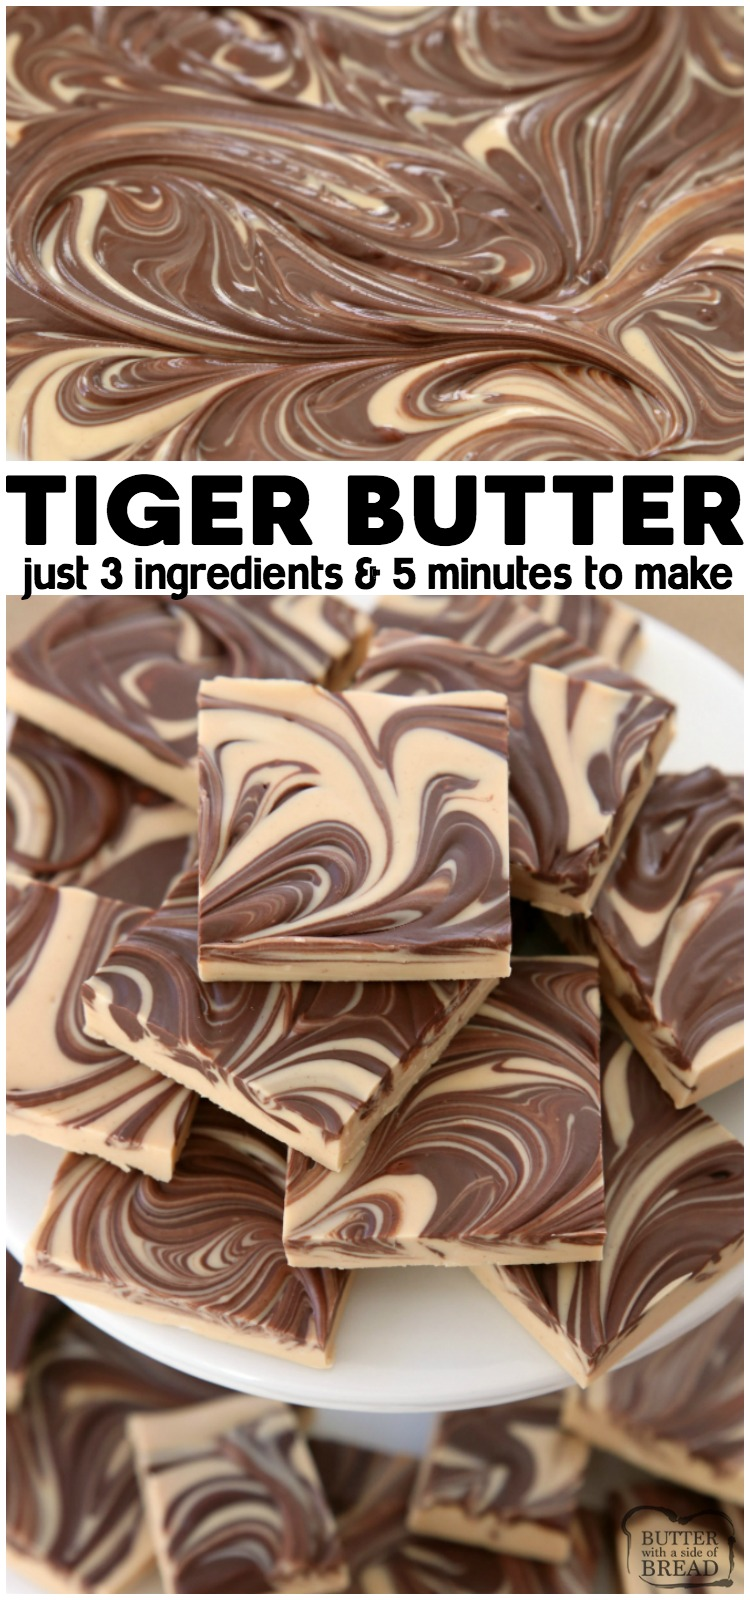 Tiger Butter made from 3 ingredients that are melted & swirled together in minutes. Gorgeous holiday candy recipe with rich & creamy peanut butter chocolate flavor.